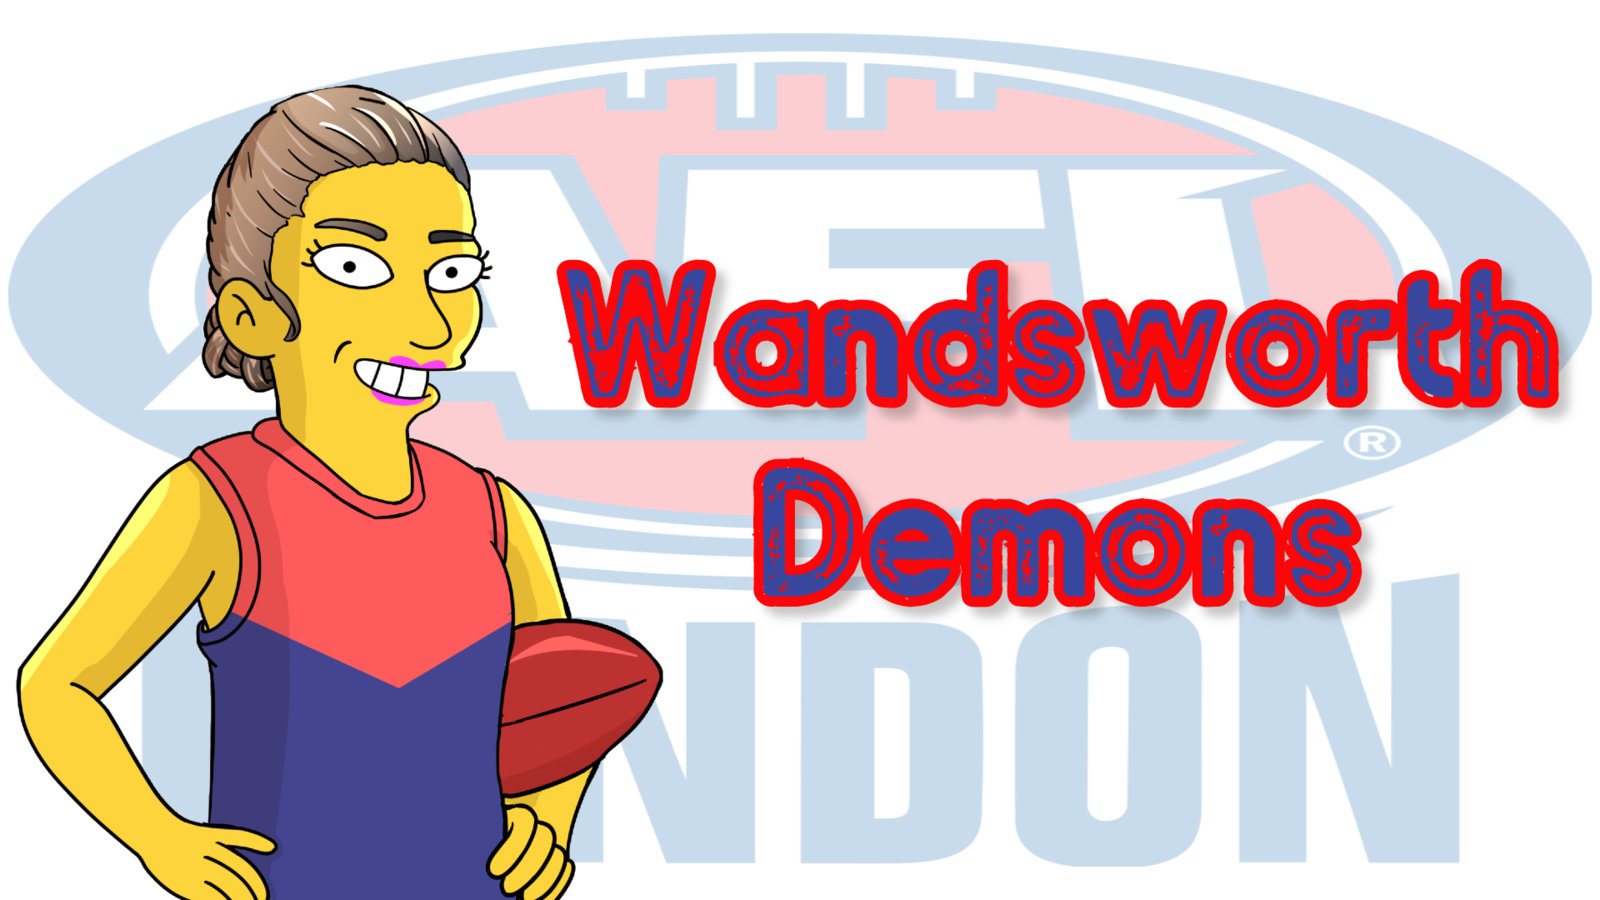 AFL Europe 2020 - Wandsworth Demons.jpg